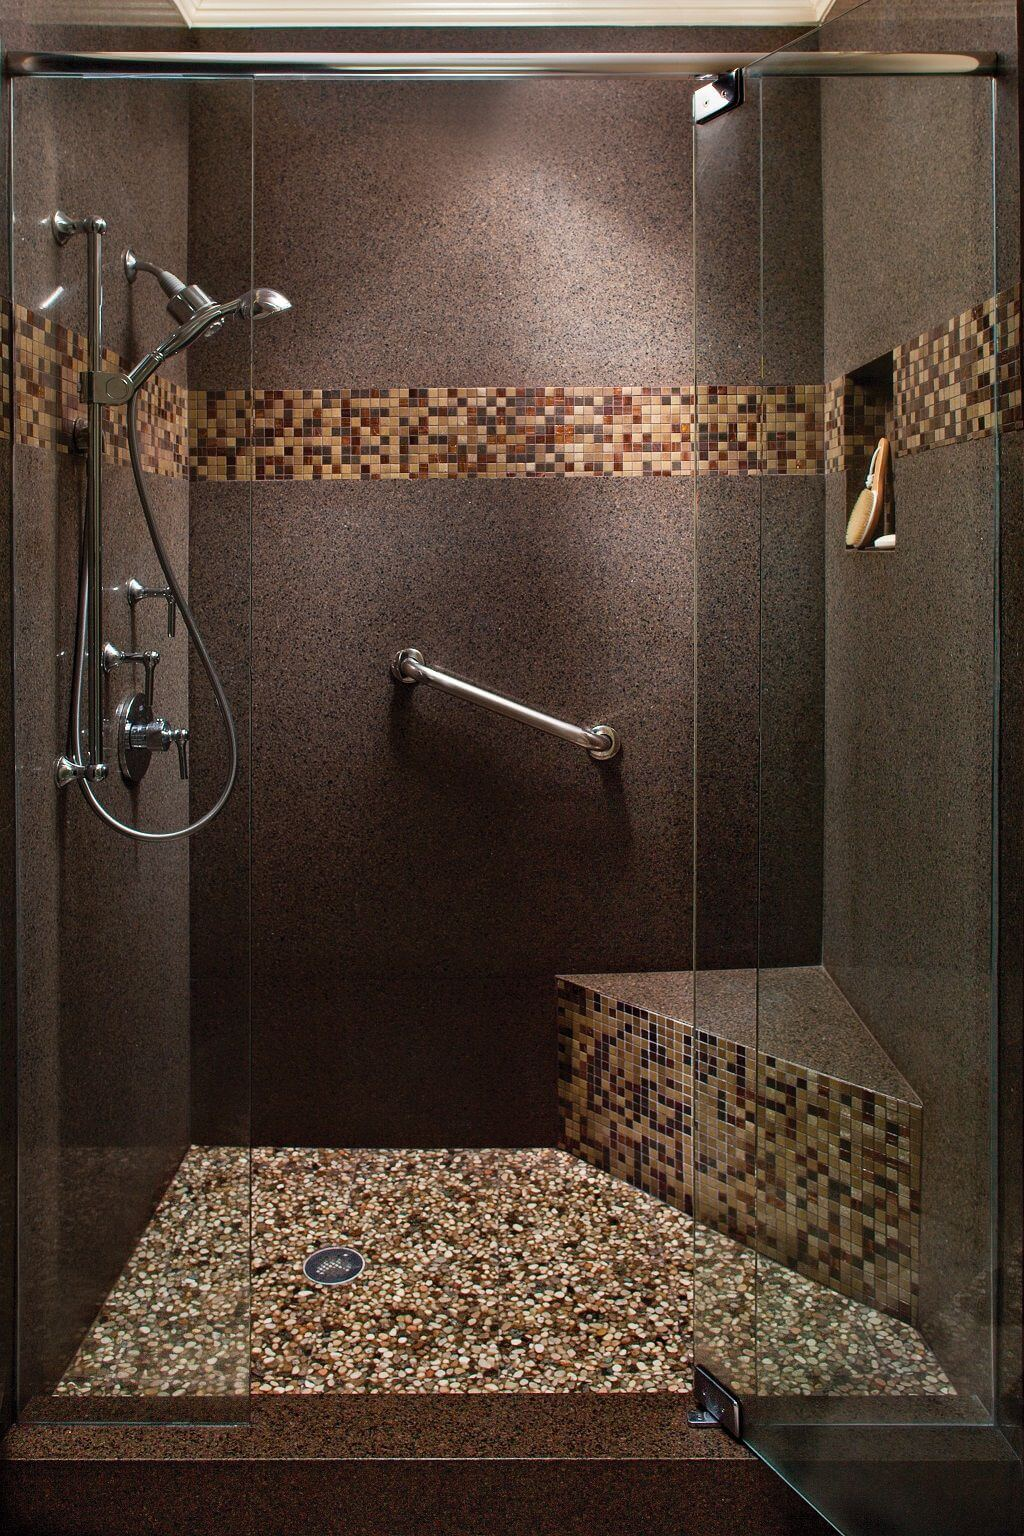 south by southwest multi tiered shower design - Shower Tile Design Ideas